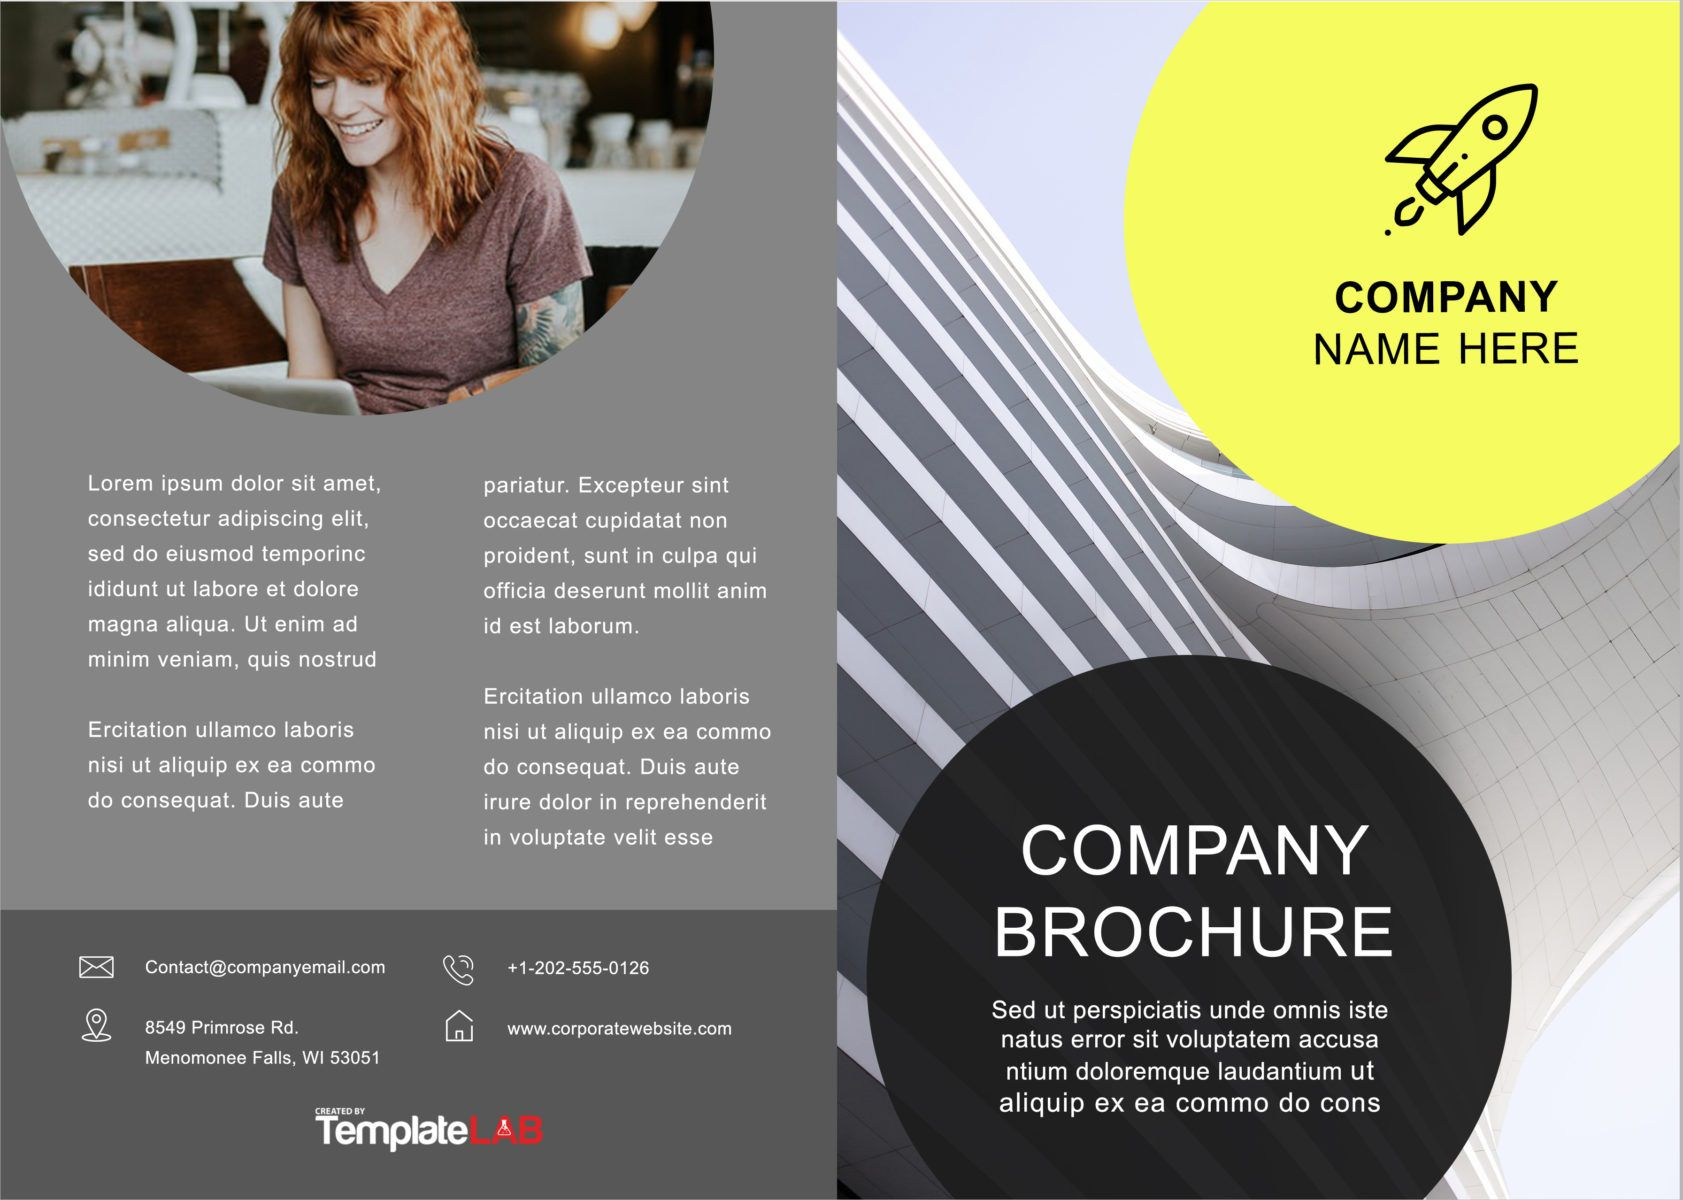 001 Staggering Free Online Brochure Template For Word Inspiration  MicrosoftFull